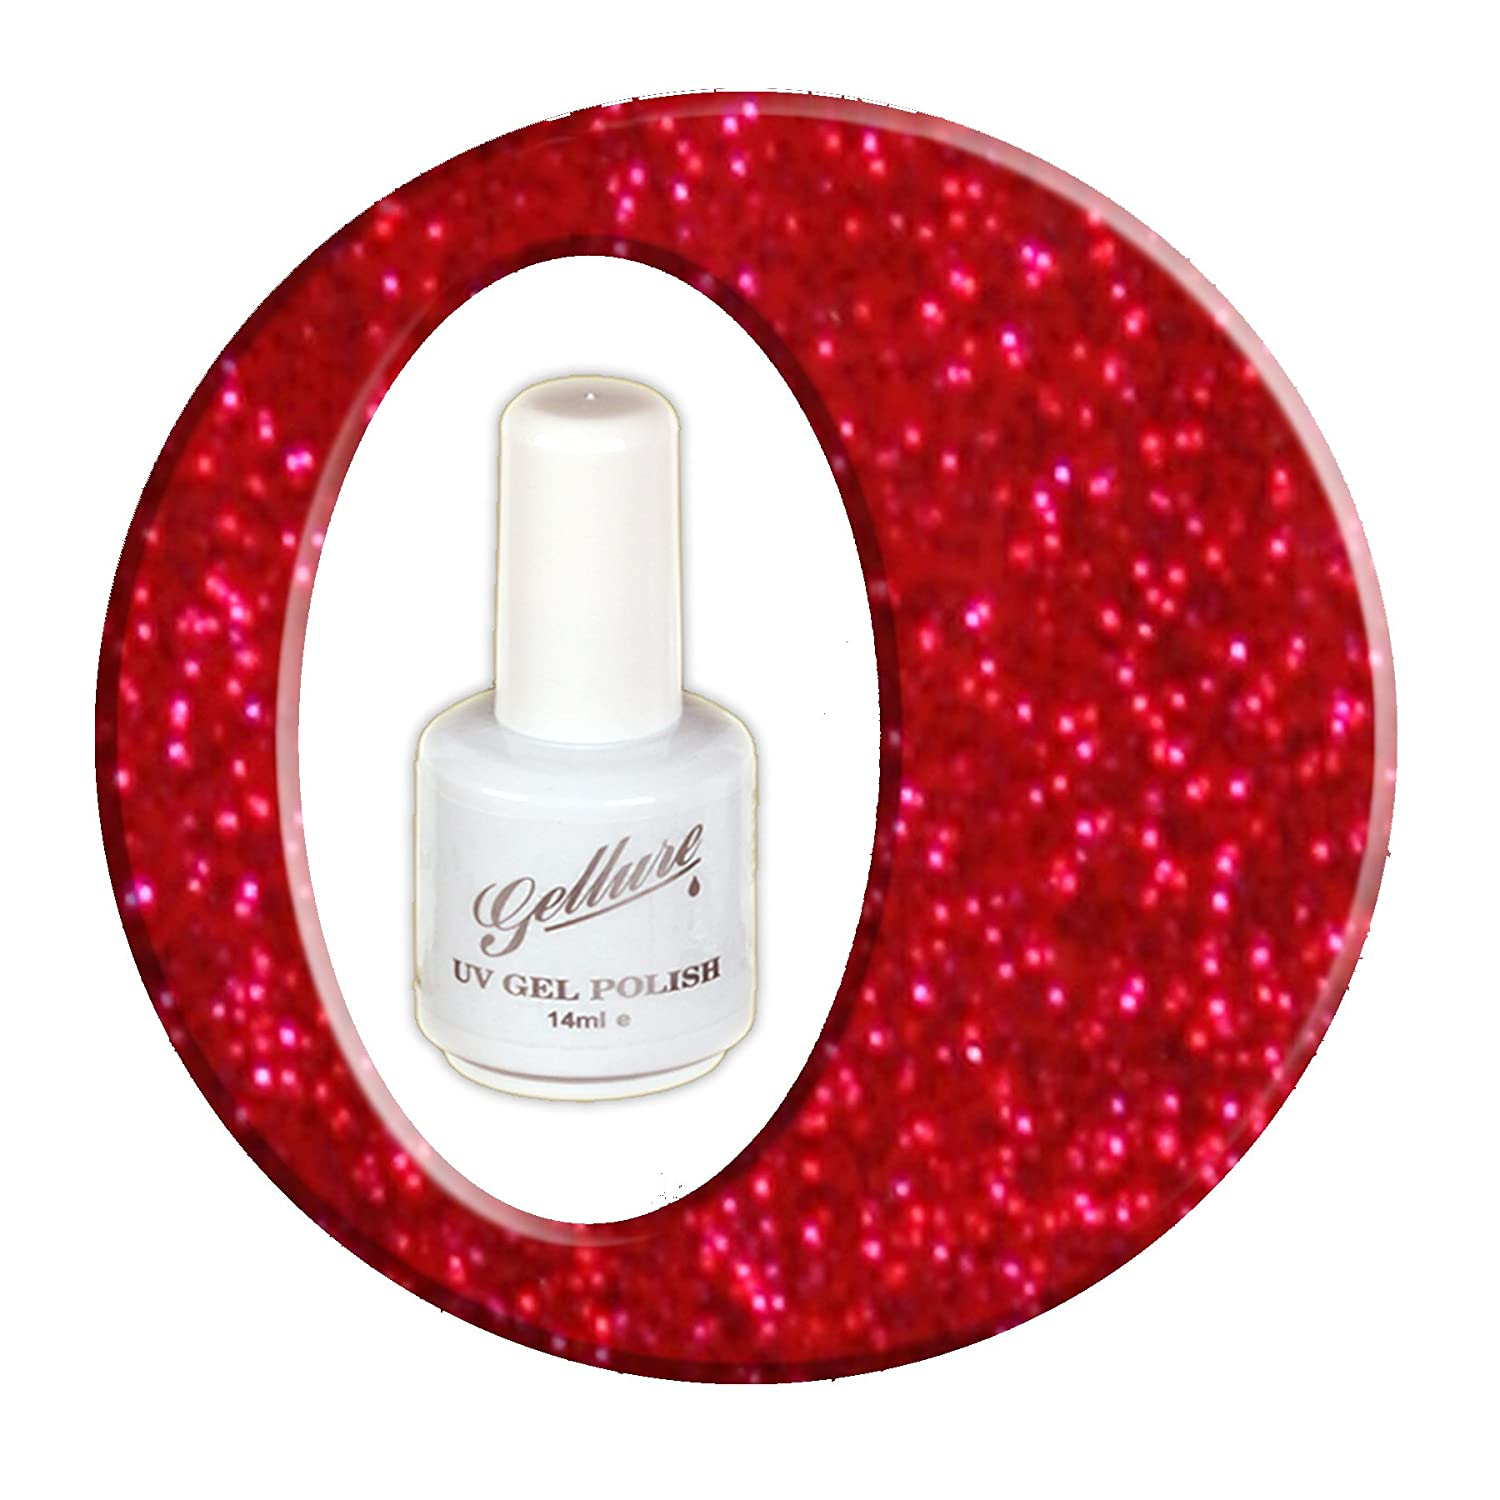 #09 Gellure U.V & L.E.D Gel Nail Polish - Ruby Slippers - Shimmering Deep Red Metallic Glitter, click your heels together and make a wish!